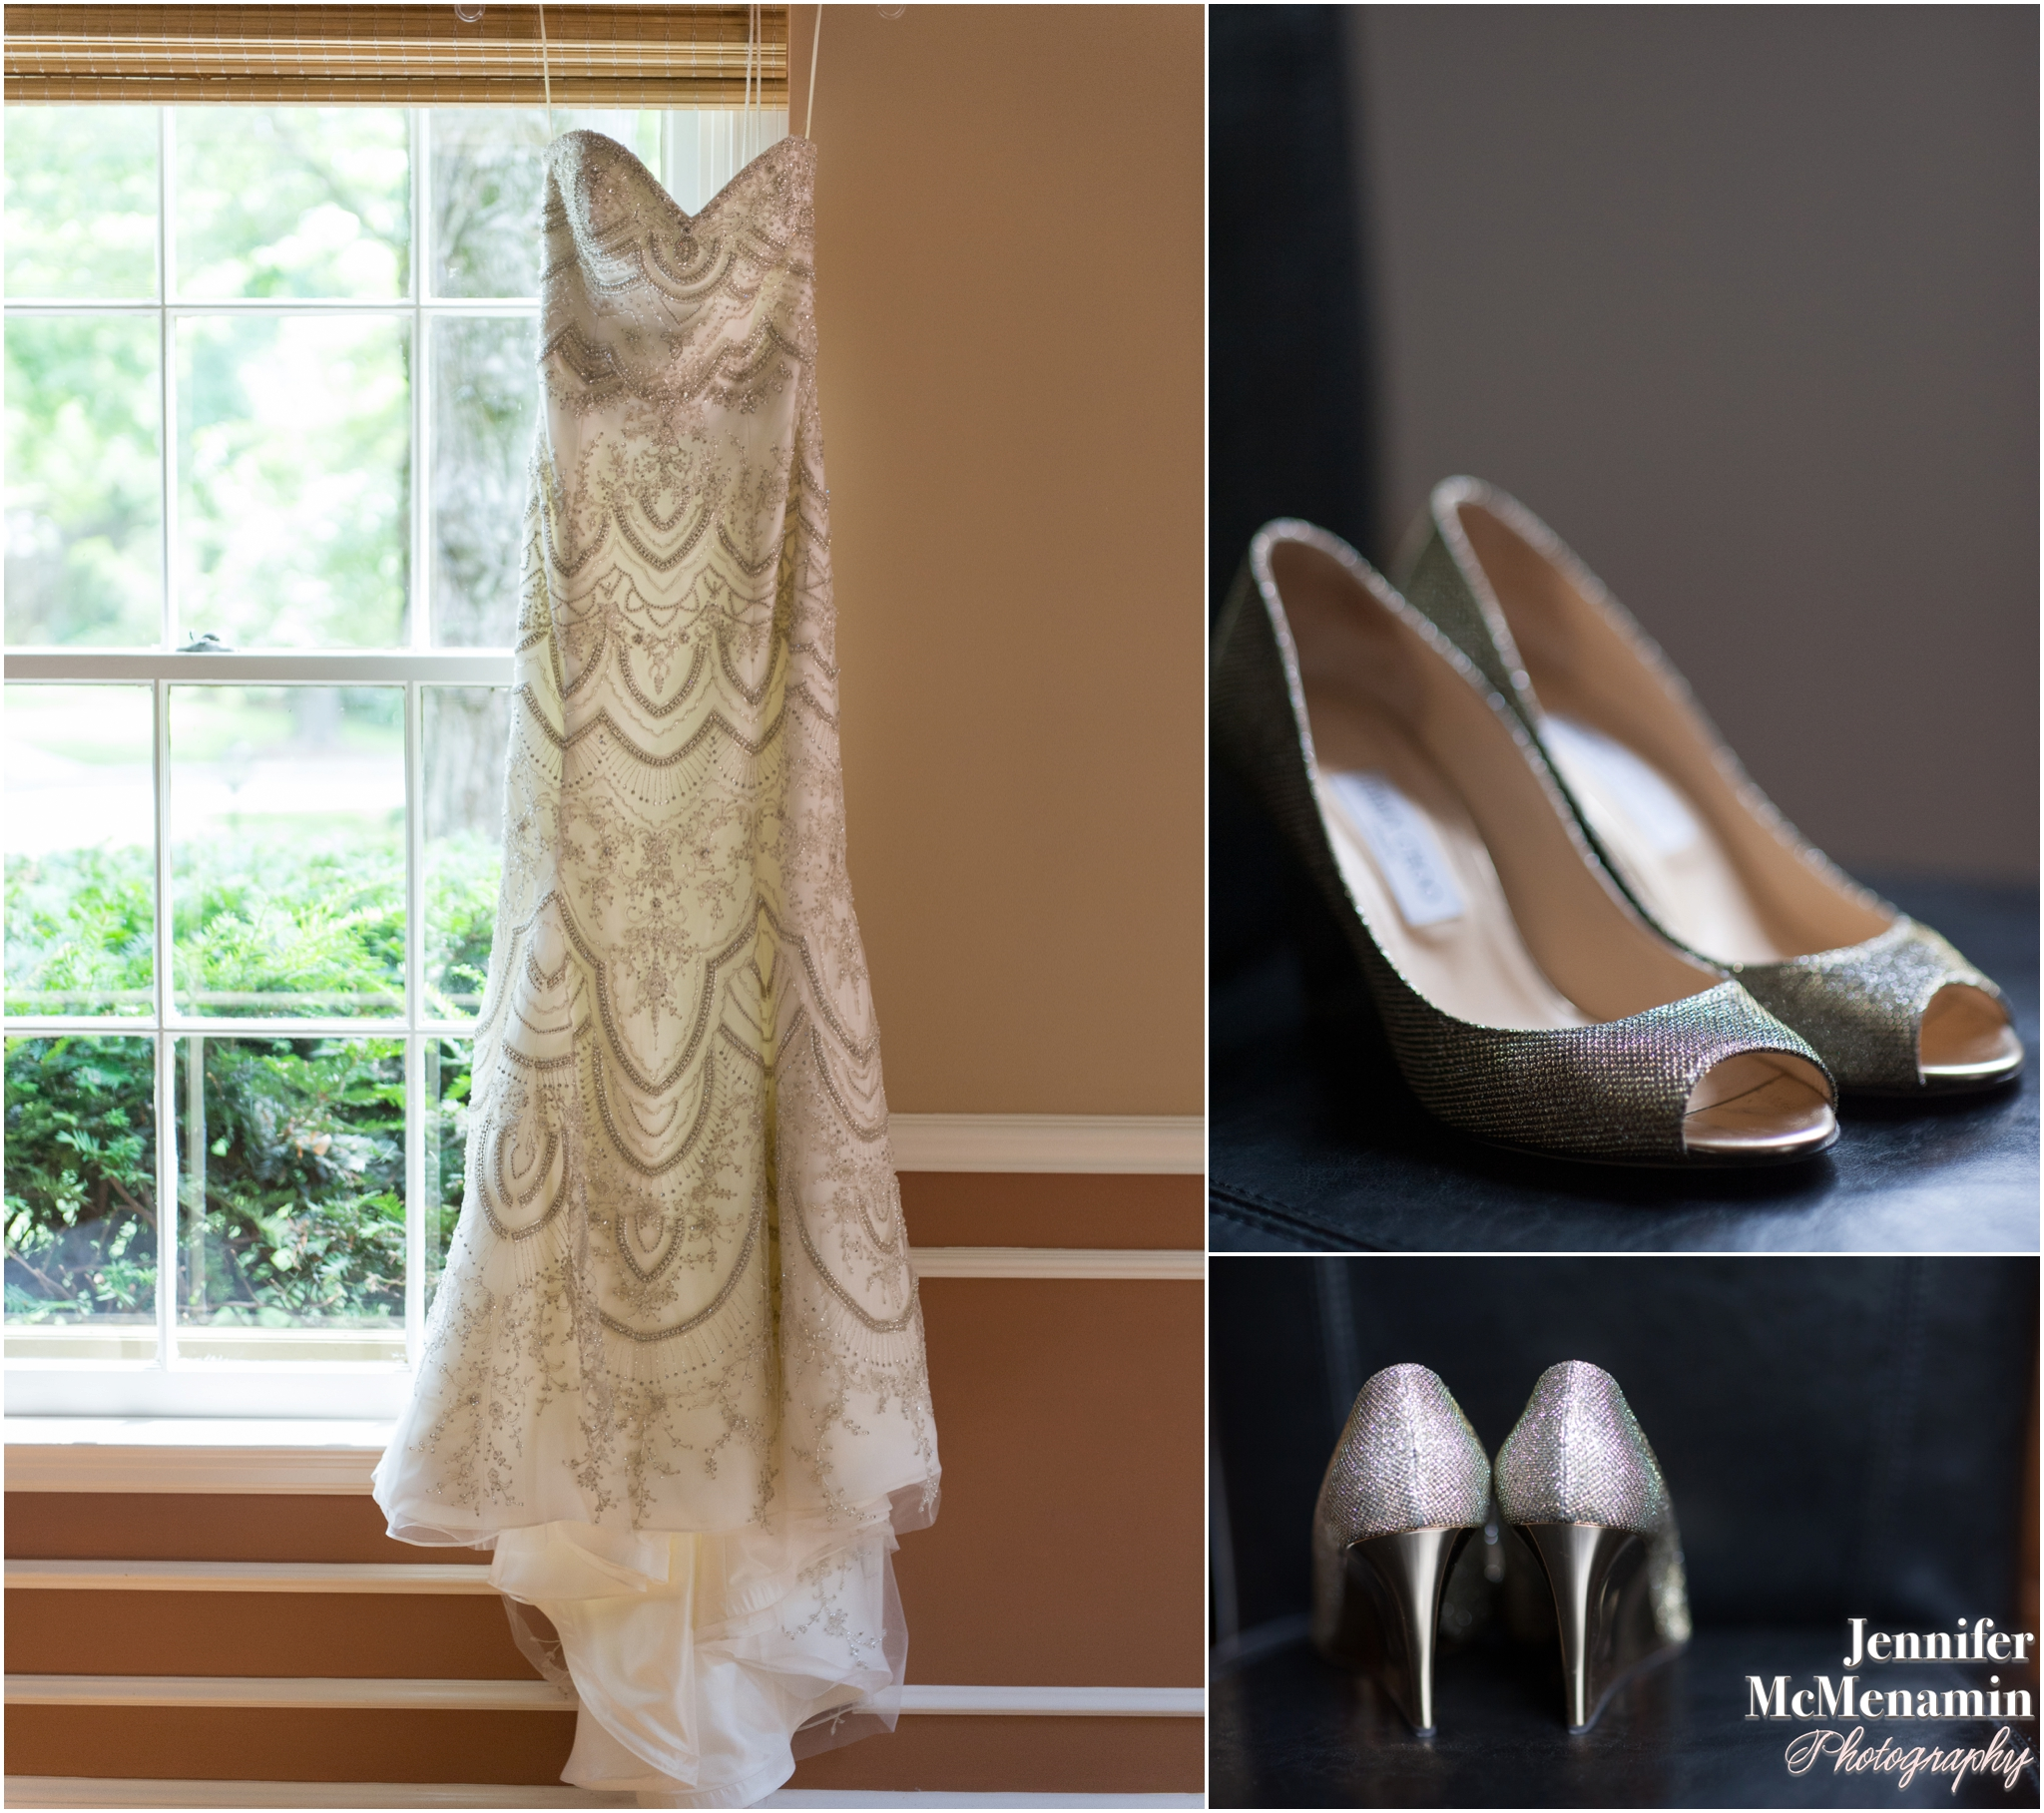 003-CoughlinPomper_00059-0011_JenniferMcMenaminPhotography_Private-Residence-Roland-Park_Baltimore-Wedding-Photography